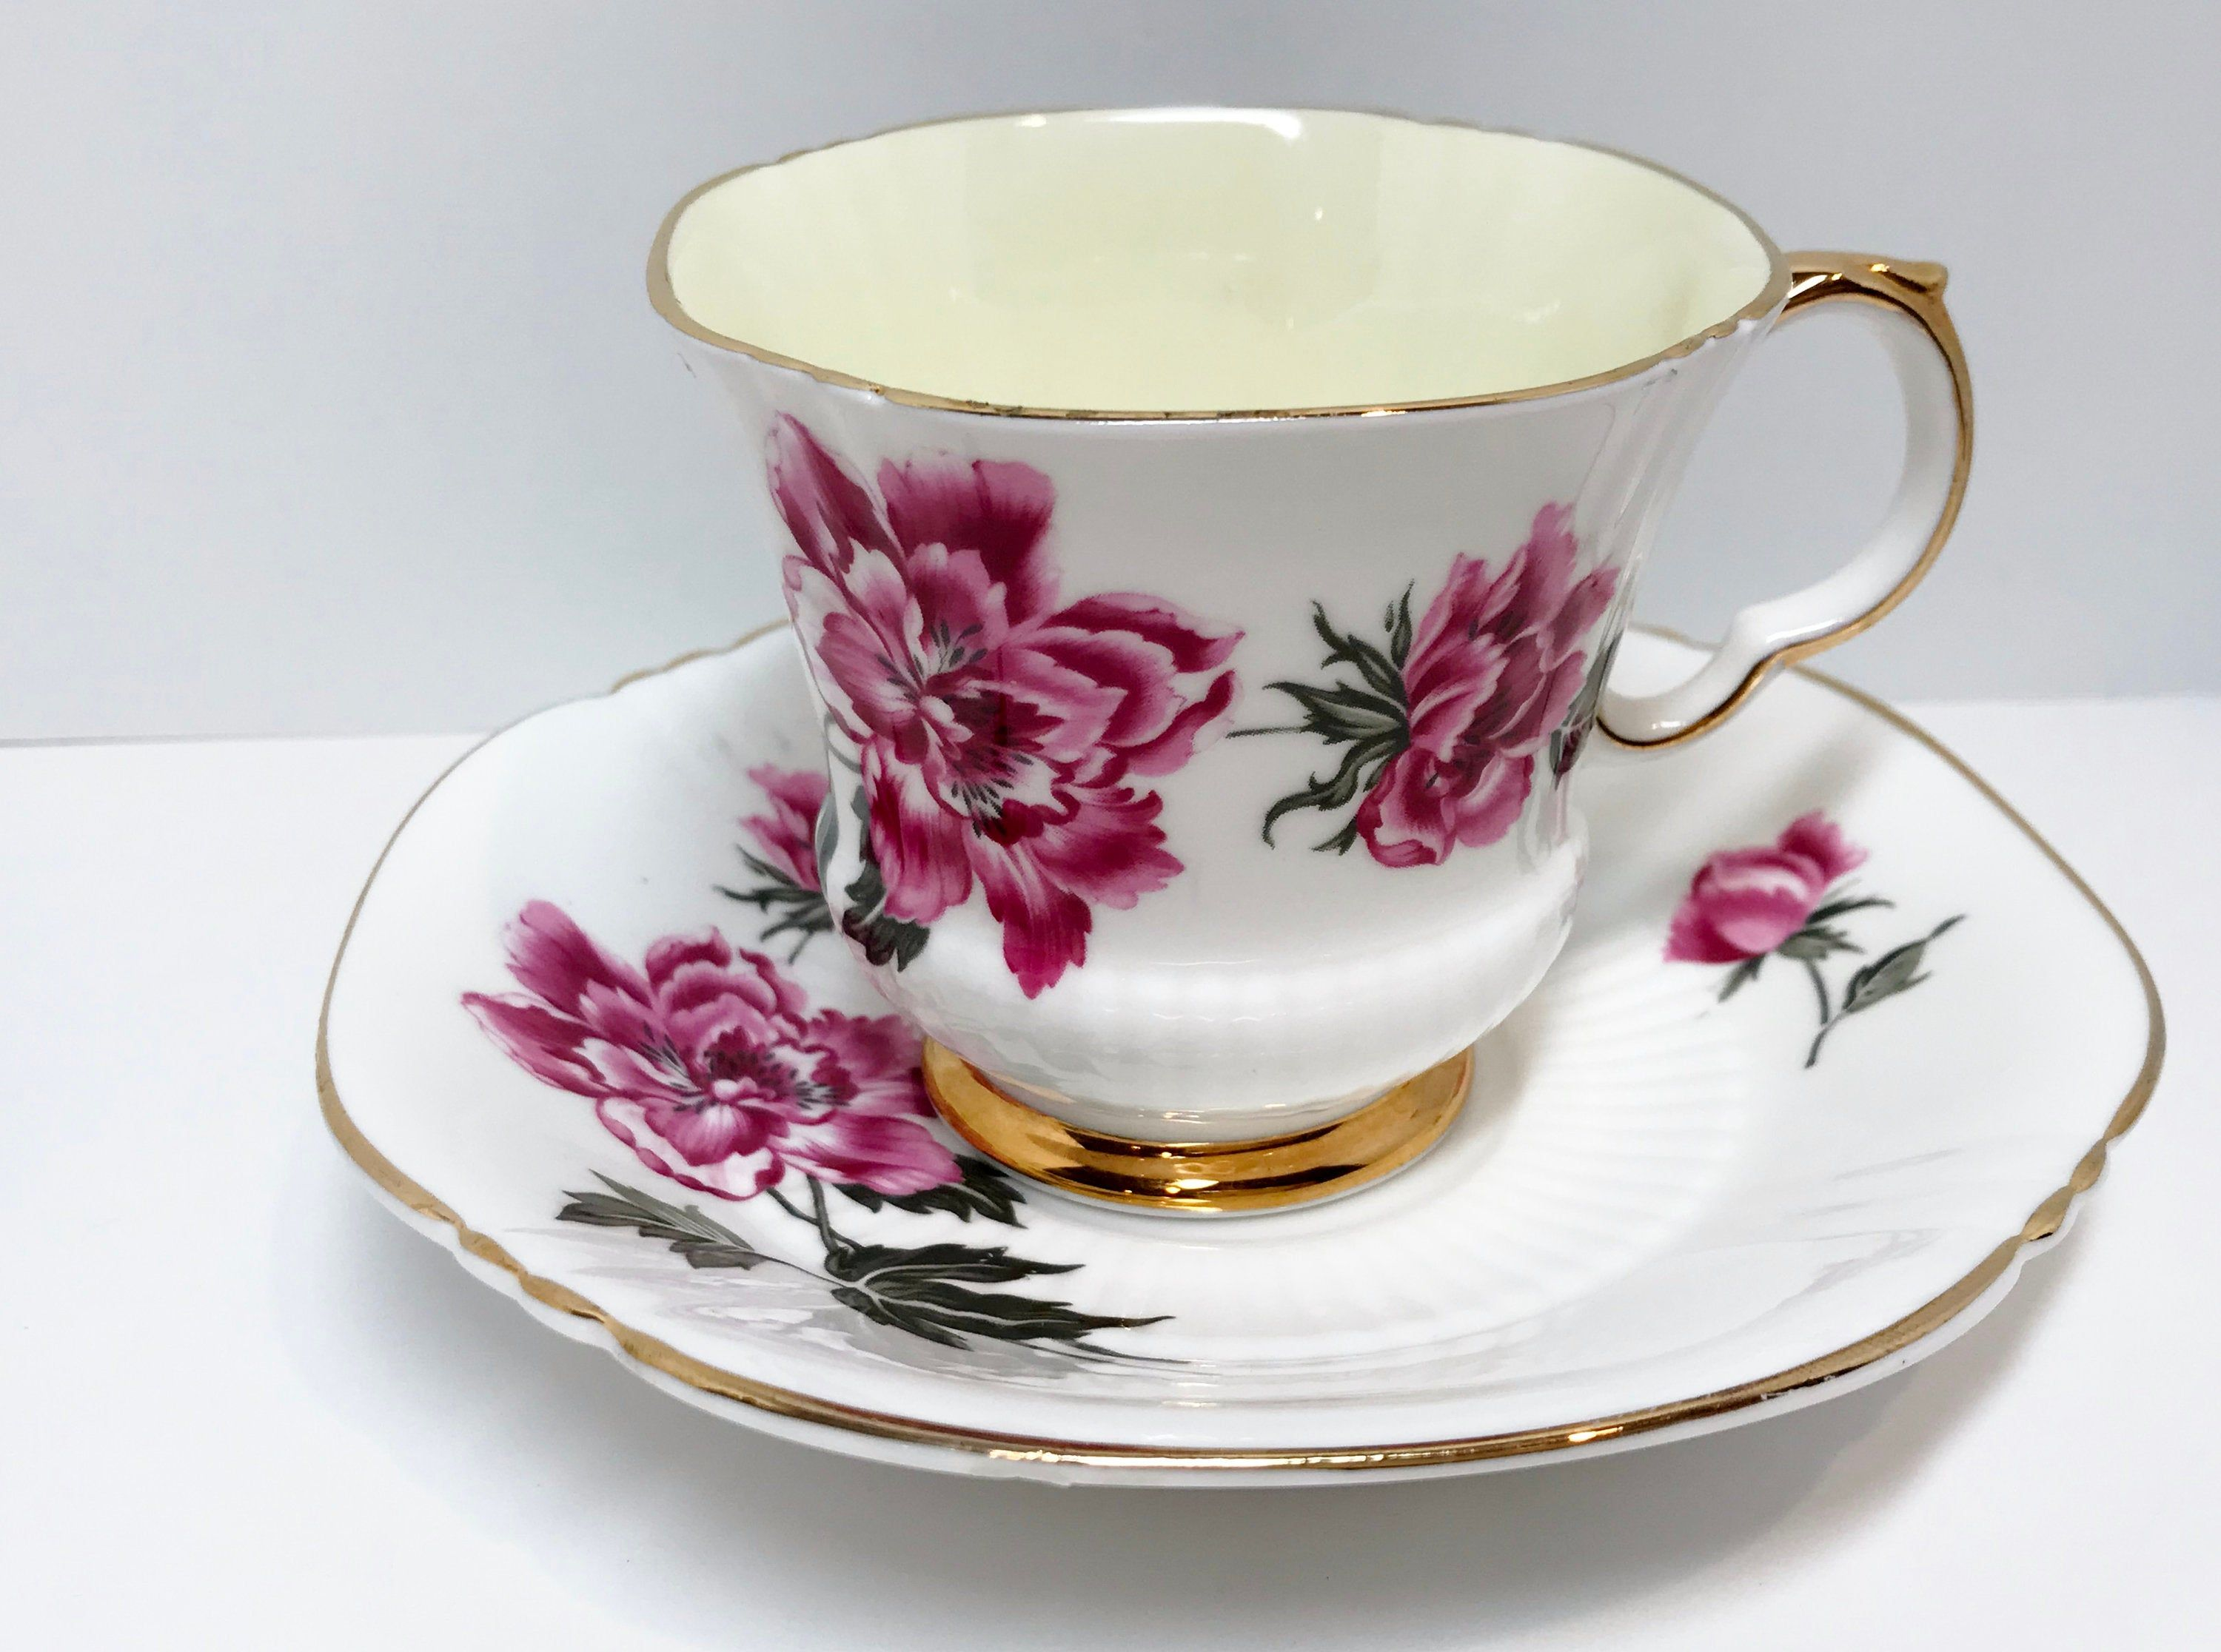 Adderley Tea Cup and Saucer, Antique Tea Cups Vintage, Floral Tea Cups, English Bone China Cups, Friendship Cup, English Tea Cups #teacups